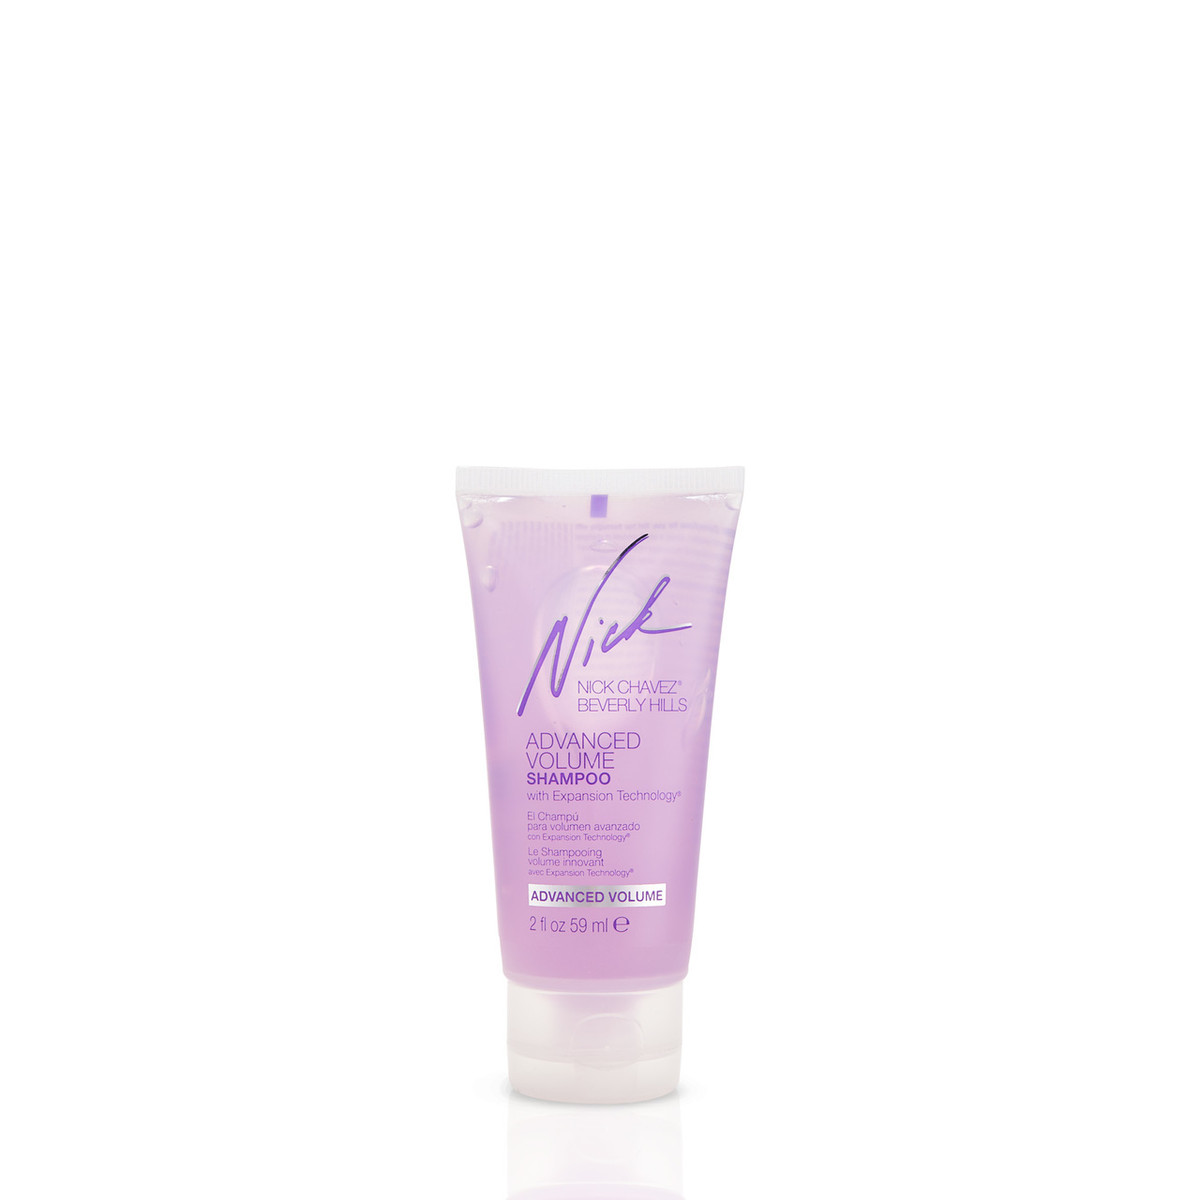 Advanced Volume Shampoo with Expansion Technology 2oz